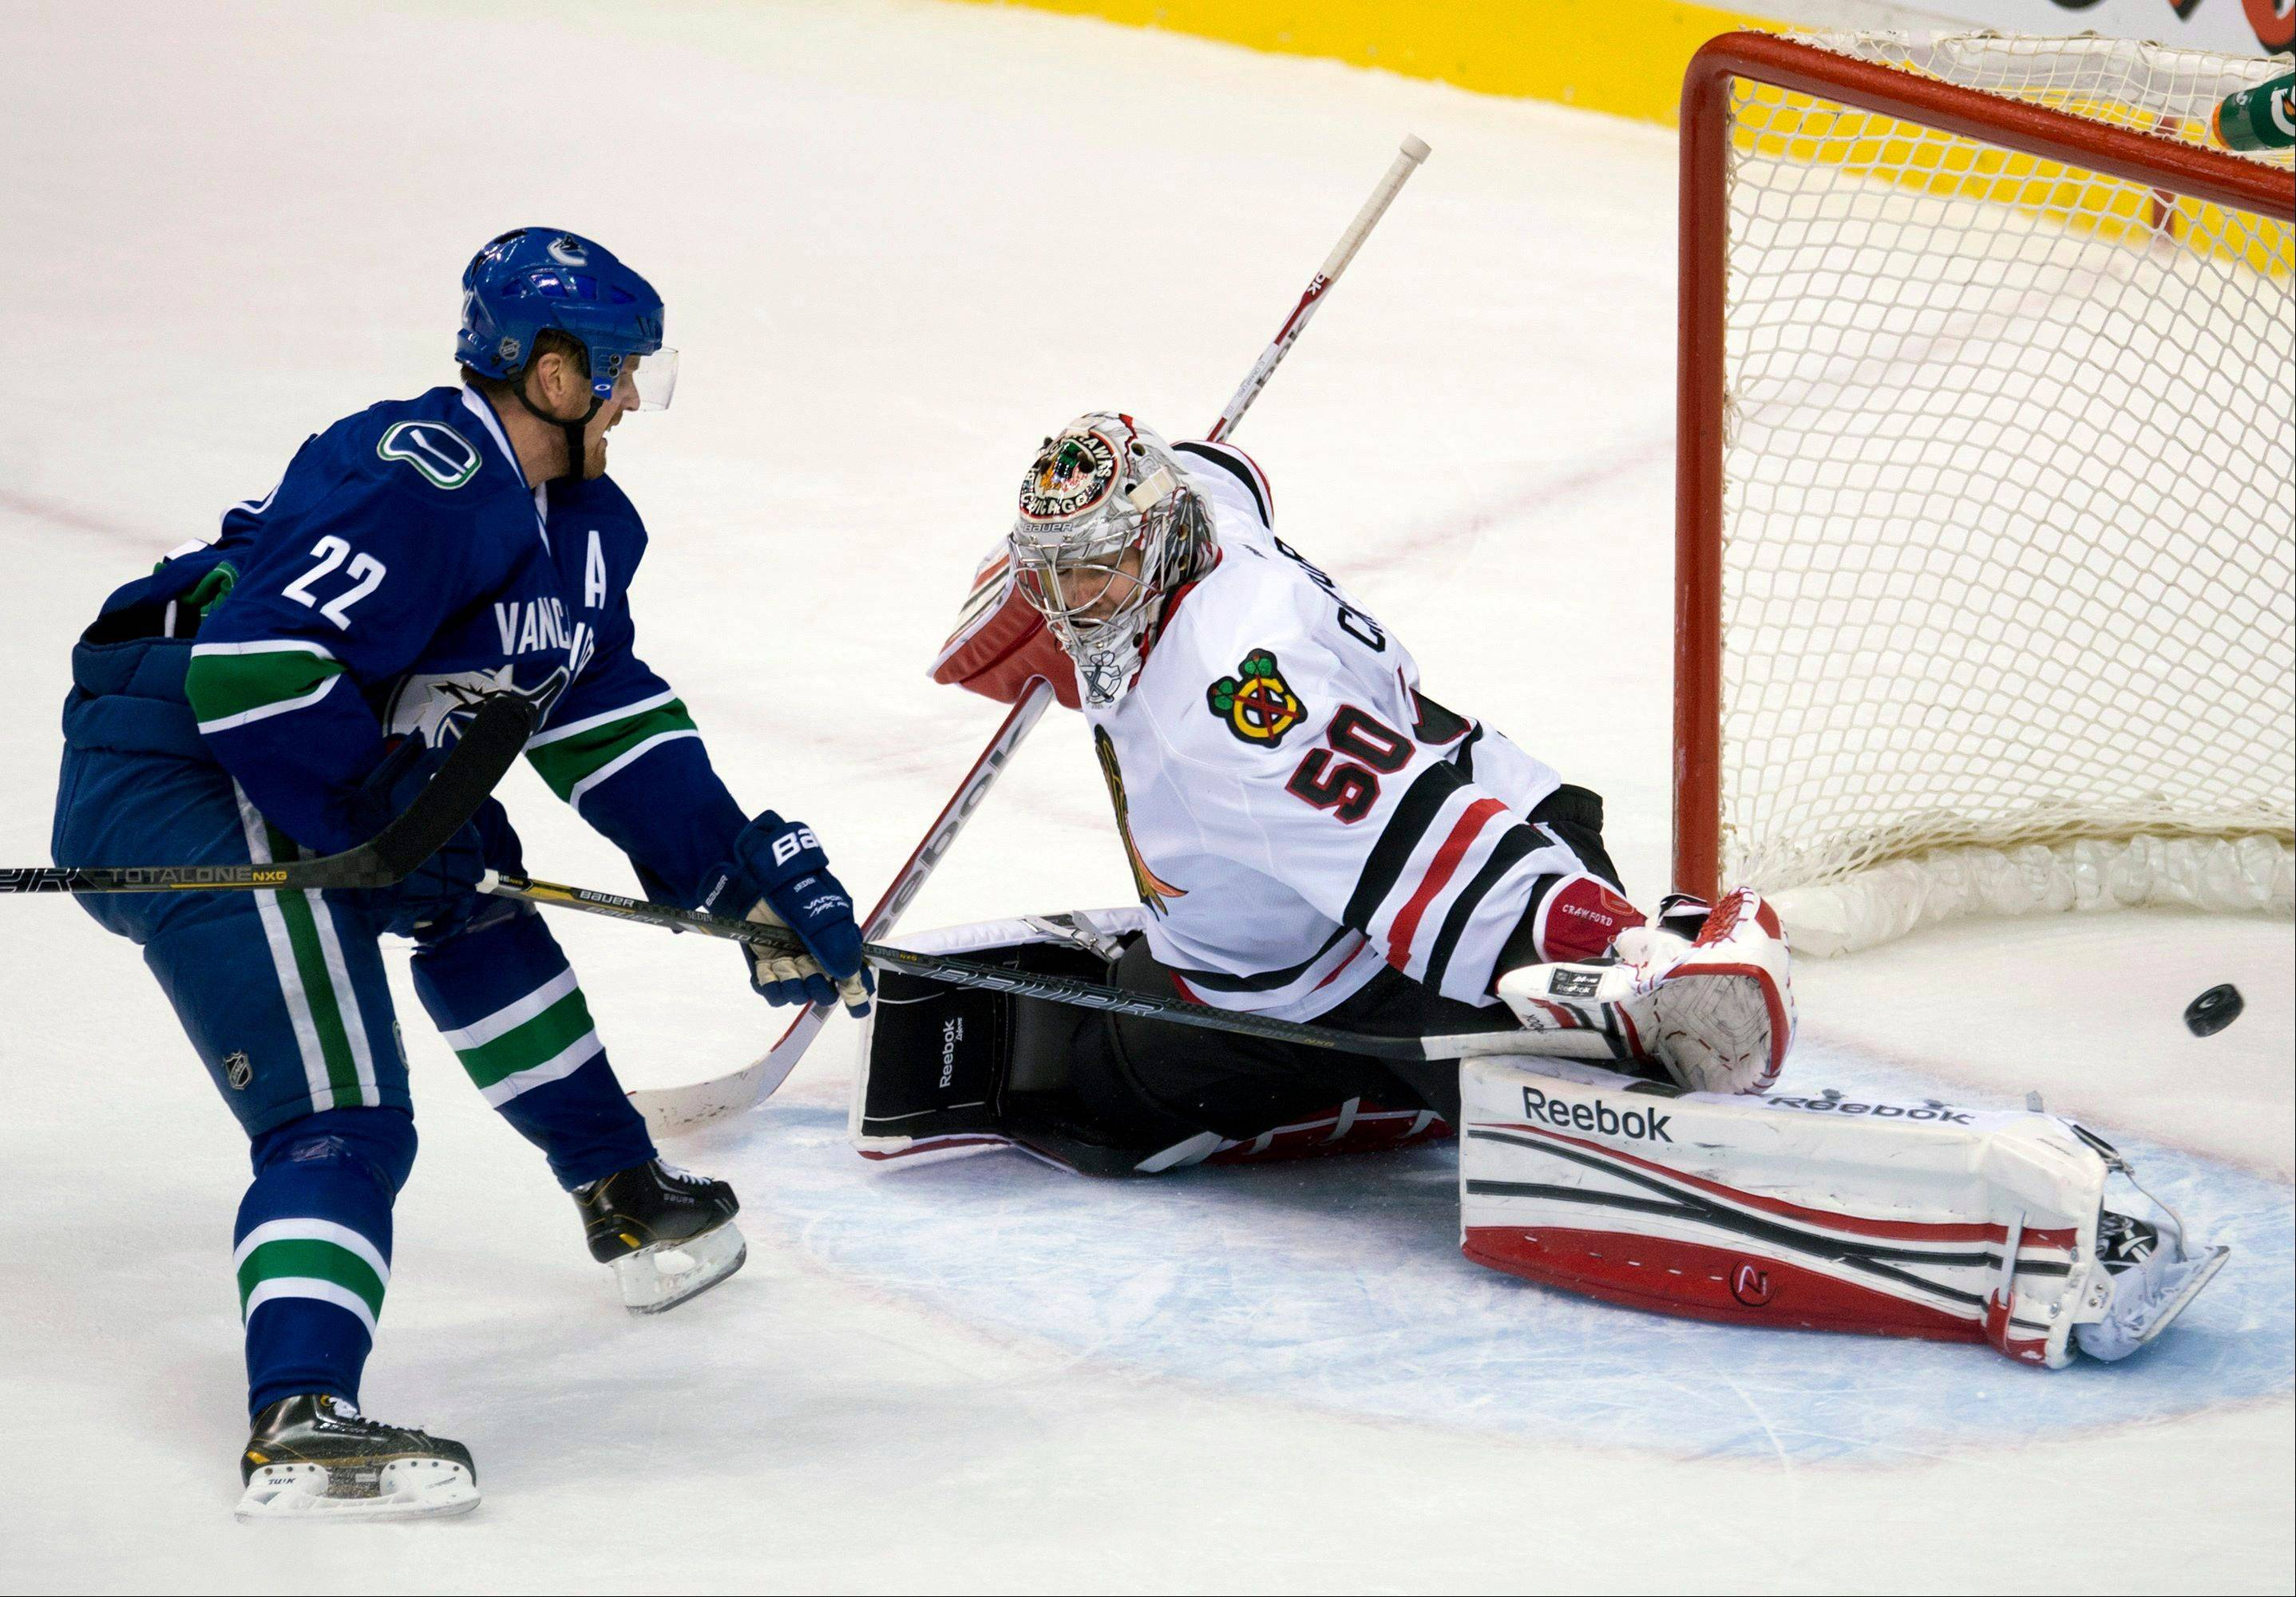 Canucks left wing Daniel Sedin scores against Blackhawks goalie Corey Crawford during the second period Monday in Vancouver.